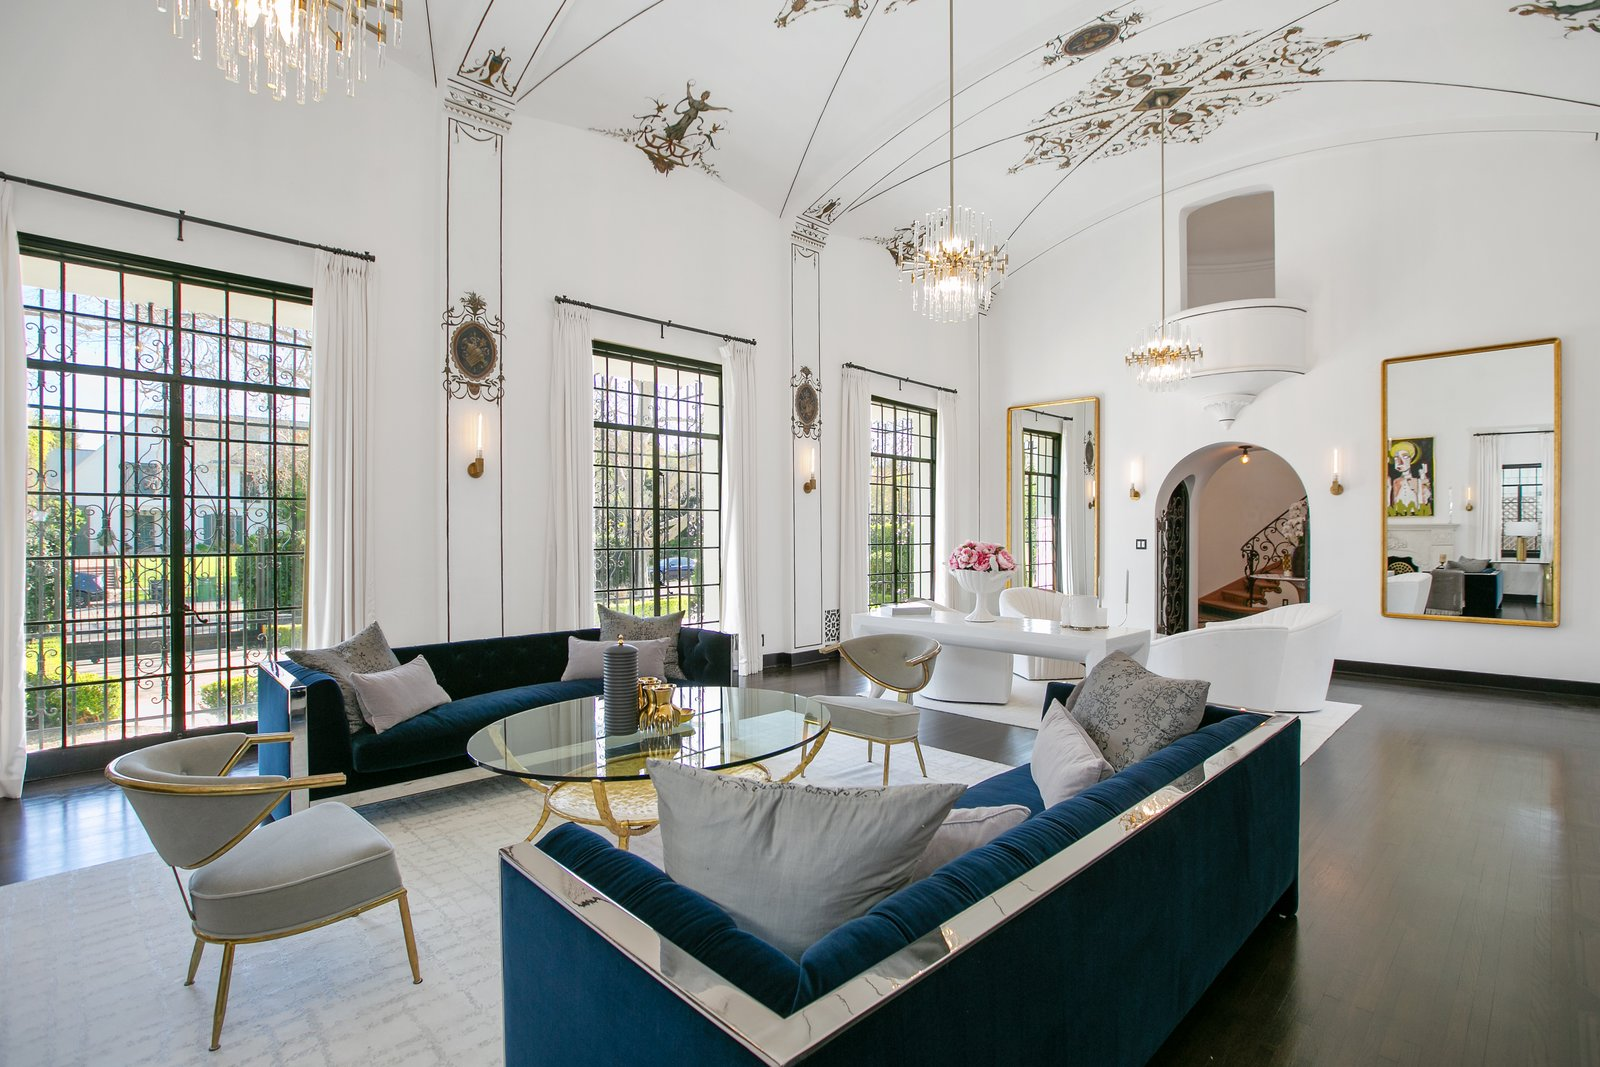 Living Room, Dark Hardwood Floor, Table, Sofa, Coffee Tables, Chair, Ceiling Lighting, Wall Lighting, and Rug Floor Full of chandeliers, the expansive living room also features hand-painted ceilings.  Photo 5 of 14 in Beck's Former Mediterranean-Style Retreat Lists For $8M